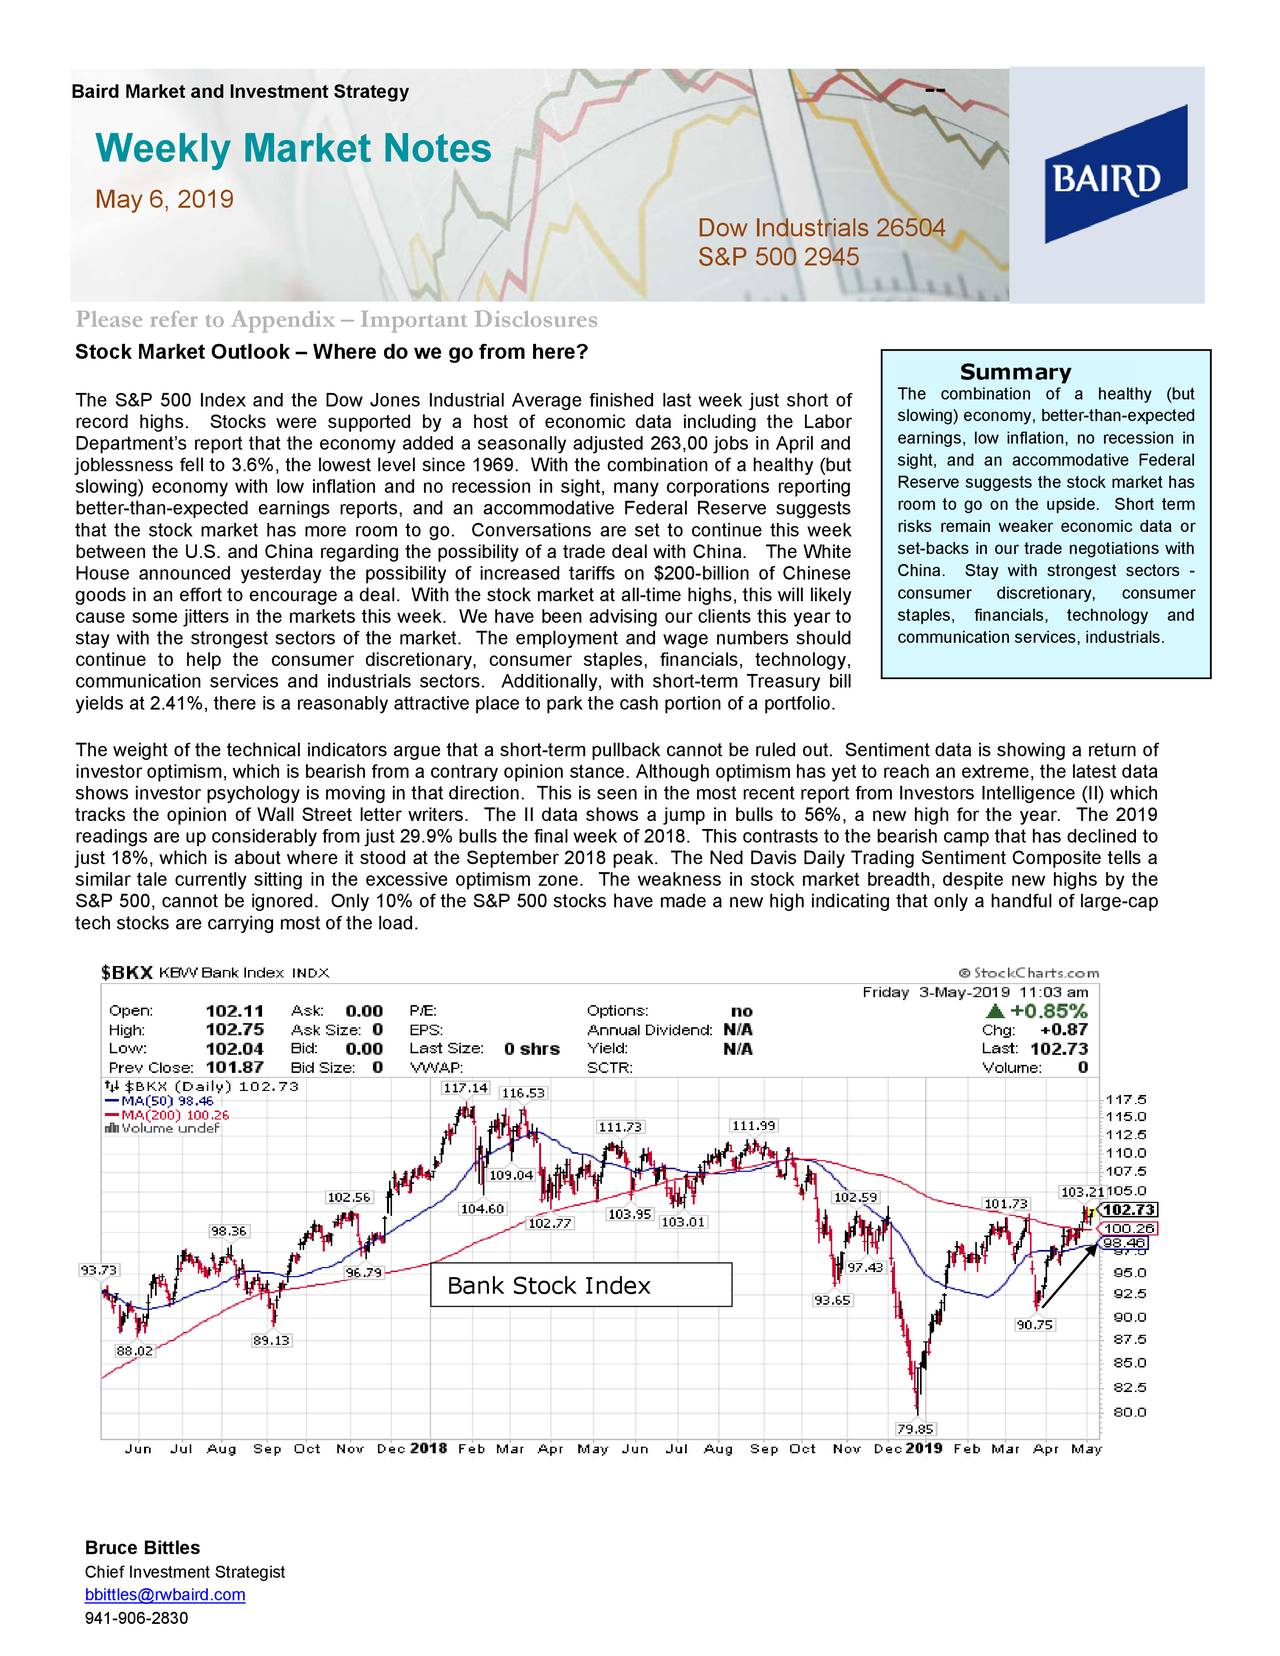 Weekly Market Notes May 6, 2019 Dow Industrials 26504 S&P 500 2945 Please refer to Appendix – Important Disclosures Stock Market Outlook – Where do we go from here? Summary The S&P 500 Index and the Dow Jones Industrial Average finished last week just short of The combination of a healthy (but record highs. Stocks were supported by a host of economic data including the Labor slowing) economy, better-than-expected Department's report that the economy added a seasonally adjusted 263,00 jobs in April and earnings, low inflation, no recession in joblessness fell to 3.6%, the lowest level since 1969. With t he combination of a healthy (but sight, and an accommodative Federal Reserve suggests the stock market has slowing) economy with low inflation and no recession in sight, many corporations reporting room to go on the upside. Shorterm better-than-expected earn ings reports, and an accommodative Federal Reserve suggests that the stock market has more room to go. Conversations are set to continue this week risks remain weaker economic data or between the U.S. and China regarding the possibility of a trade deal with China. The White set-backs in our trade negotiations with House announced yesterday the possibility of increased tariffs on $200-billion of Chinese China. Stay with strongest sectors - goods in an effort to encourage a deal. With the stock market at all -time highs, this will likelysumer discretionary, consumer cause some jitters in the markets this week. We have been advising our clients th is year to staples, financials, technology and stay with the strongest sectors of the market. The employment and wage numbers should communication services, industrials. continue to help the consumer discretionary, consumer staples, financials, technology, communication services and industrials sectors. Additionally, with short-term Treasury bill yields at 2.41%, there is a reasonably attractive place to park the cash portion of a portfolio. The weight of the technical indicators argue that a short-term pullback cannot be ruled out. Sentiment data is showing a return of investor optimism, which is bearish from a contrary opinion stance. Although optimism has yet to reach an extreme, the latest data shows investor psychology is moving in that direction. This is seen in the most recent report from Investors Intelligence ( II) which tracks the opinion of Wall Street letter writerThe II data shows a jump in bulls to 56%, a new high for the year. The 2019 readings are up considerably from just 29.9% bulls the final week of 2018. This contrasts to the bearish camp that has decli ned to just 18%, which is about where it stood at the September 2018 peak. The Ned Davis Daily Trading Sentiment Composite tells a similar tale currently sitting in the excessive optimism zone. The weakness in stock market breadth, despite new highs by the S&P 500, cannot be ignored. Only 10% of the S&P 500 stocks have made a new high indicating that only a handful of large- cap tech stocks are carrying most of the load. Bank Stock Index Bruce Bittles Chief Investment Strategist bbittles@rwbaird.com 941-906-2830